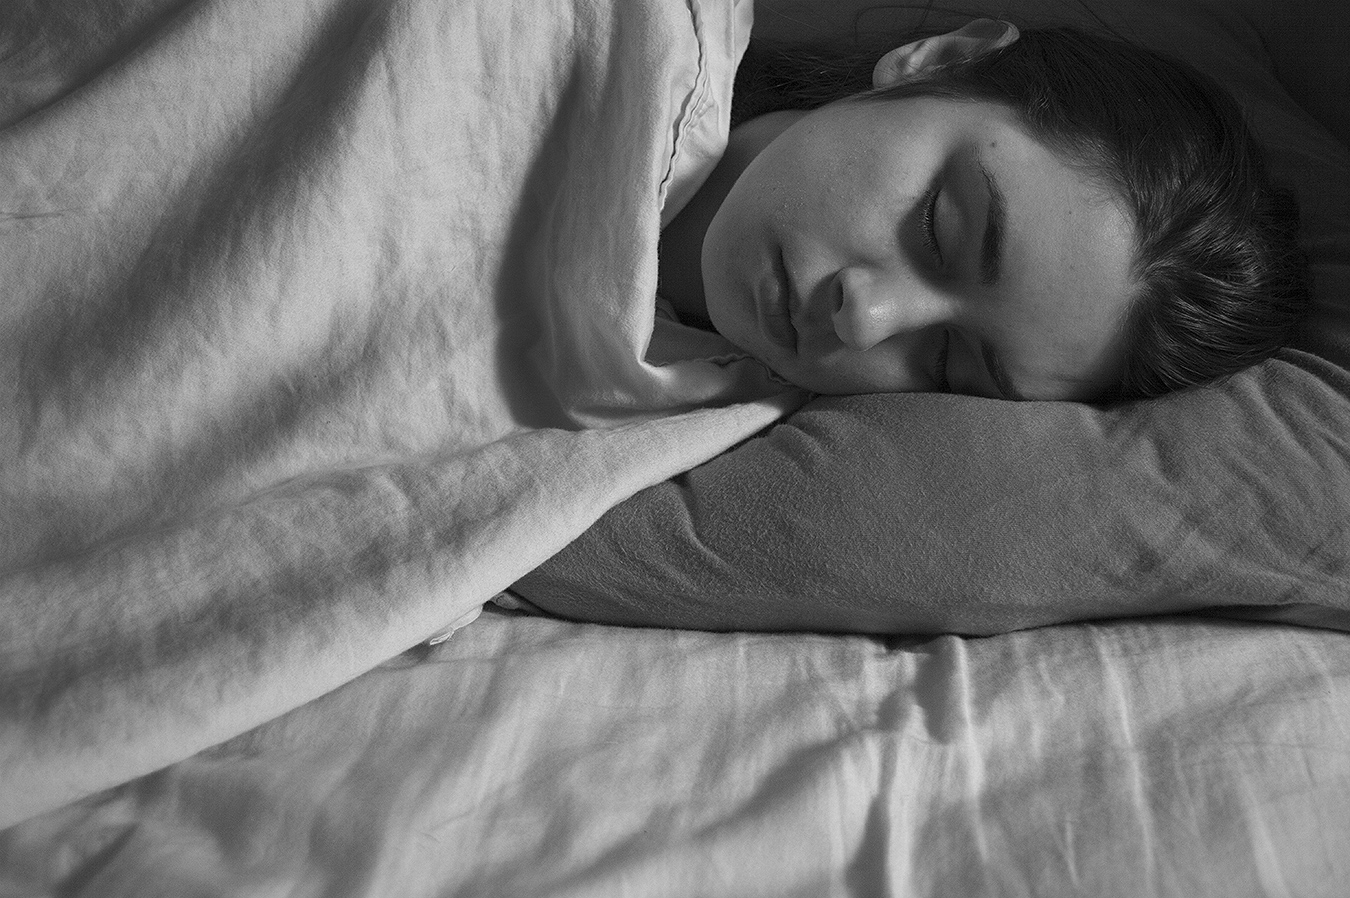 Robin_Sanders_photography_Day2_sleeping_cold_woman_young_college_lifeL